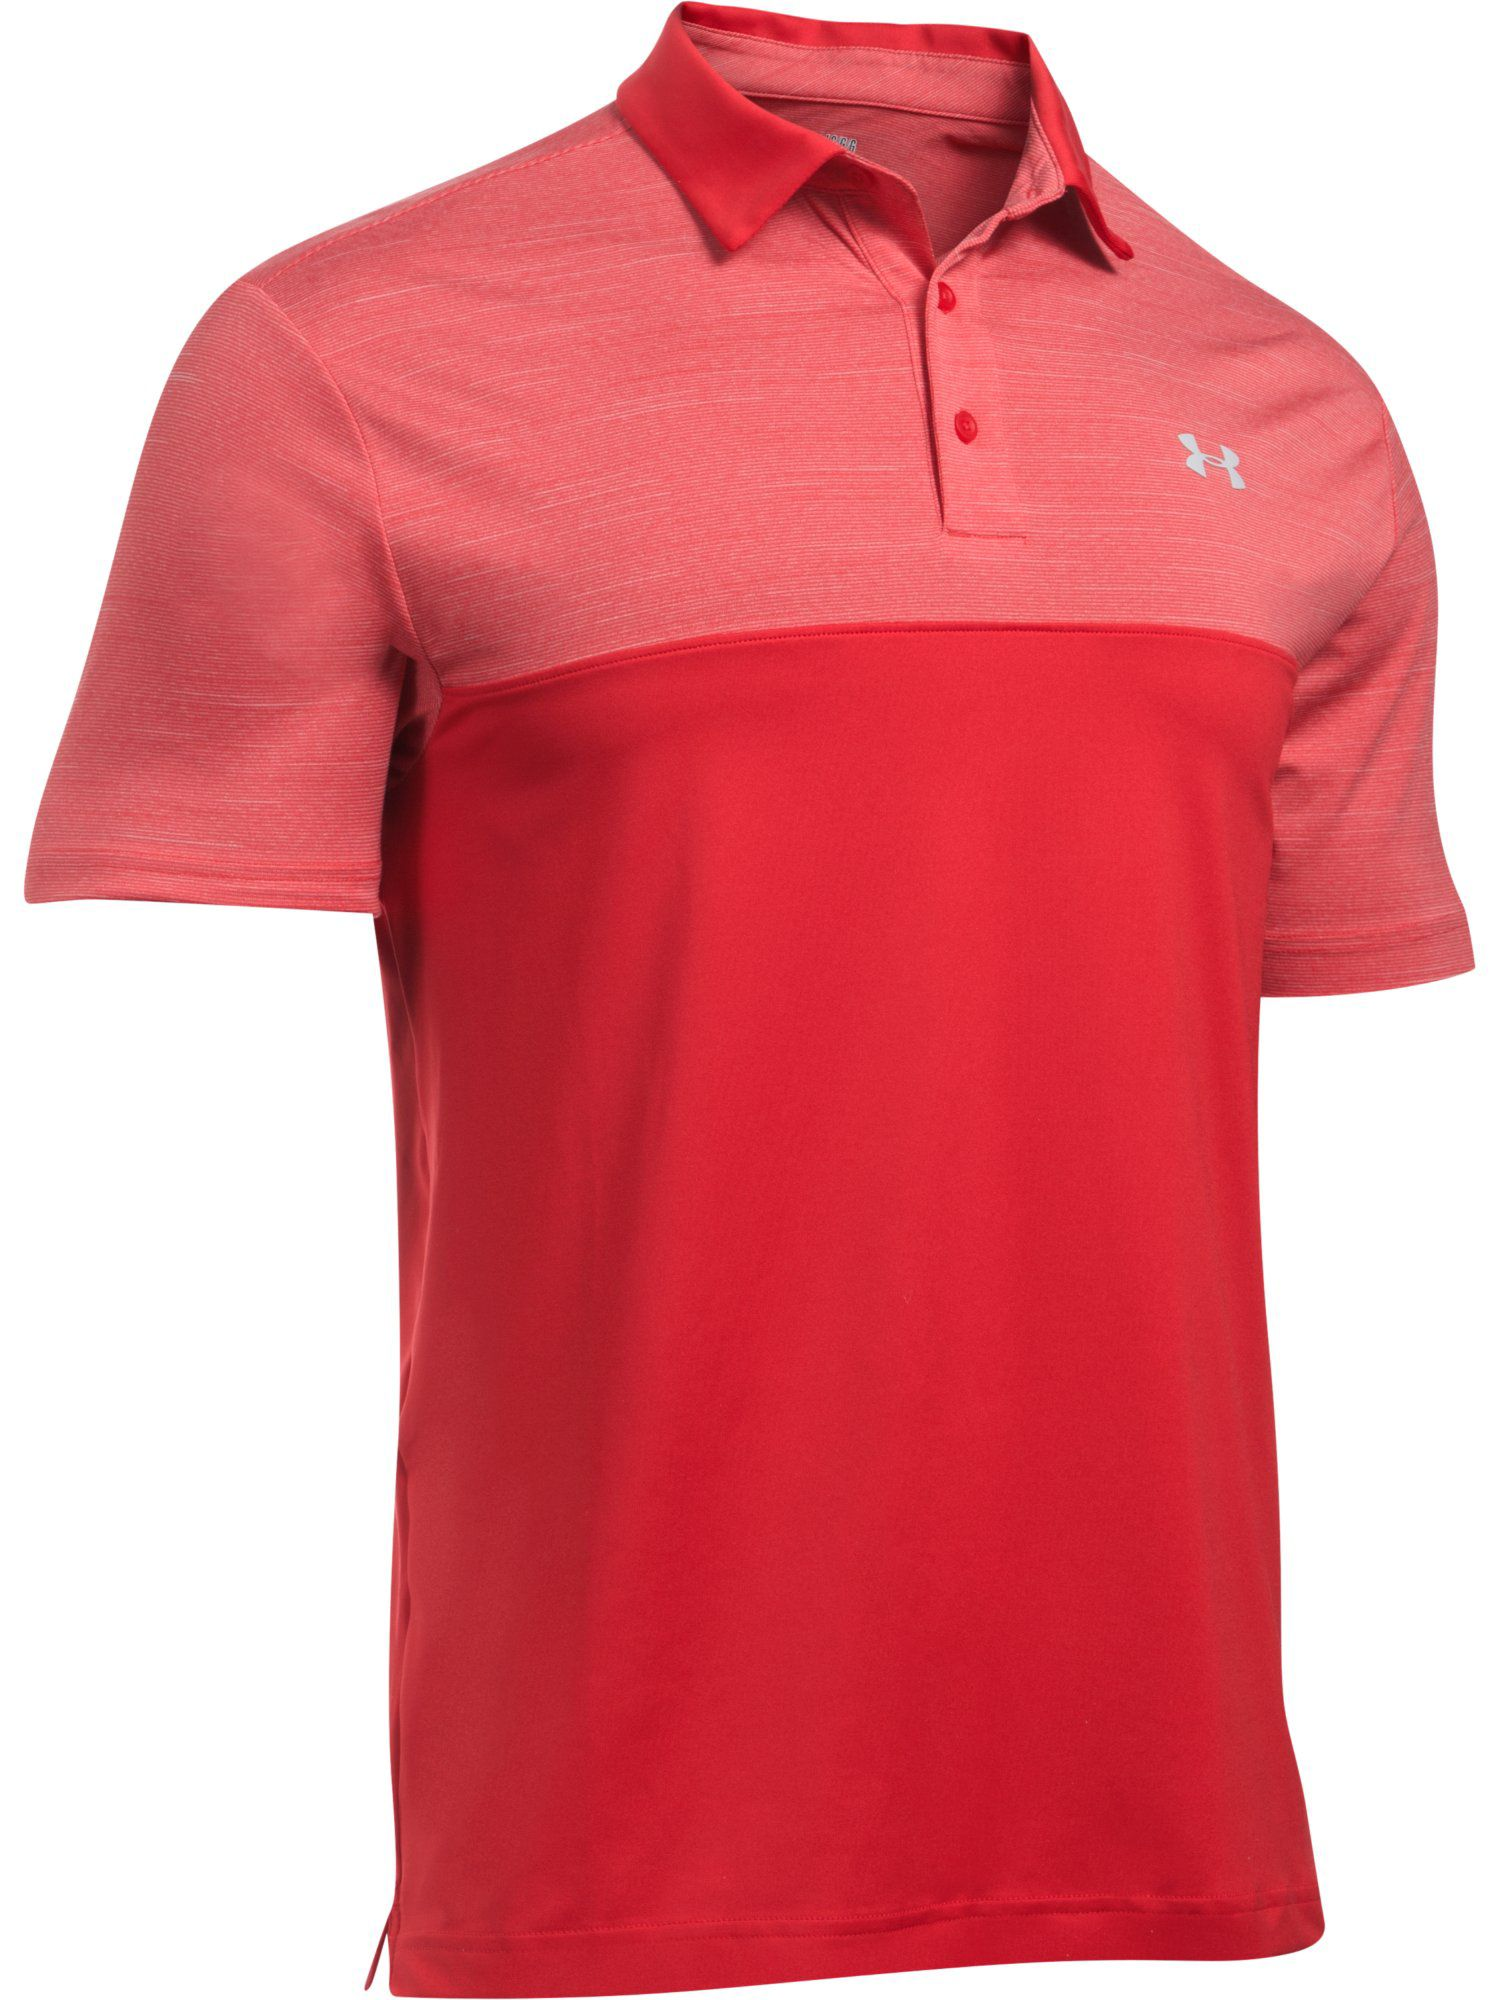 Men's Under Armour Playoff Polo Blocked, Red